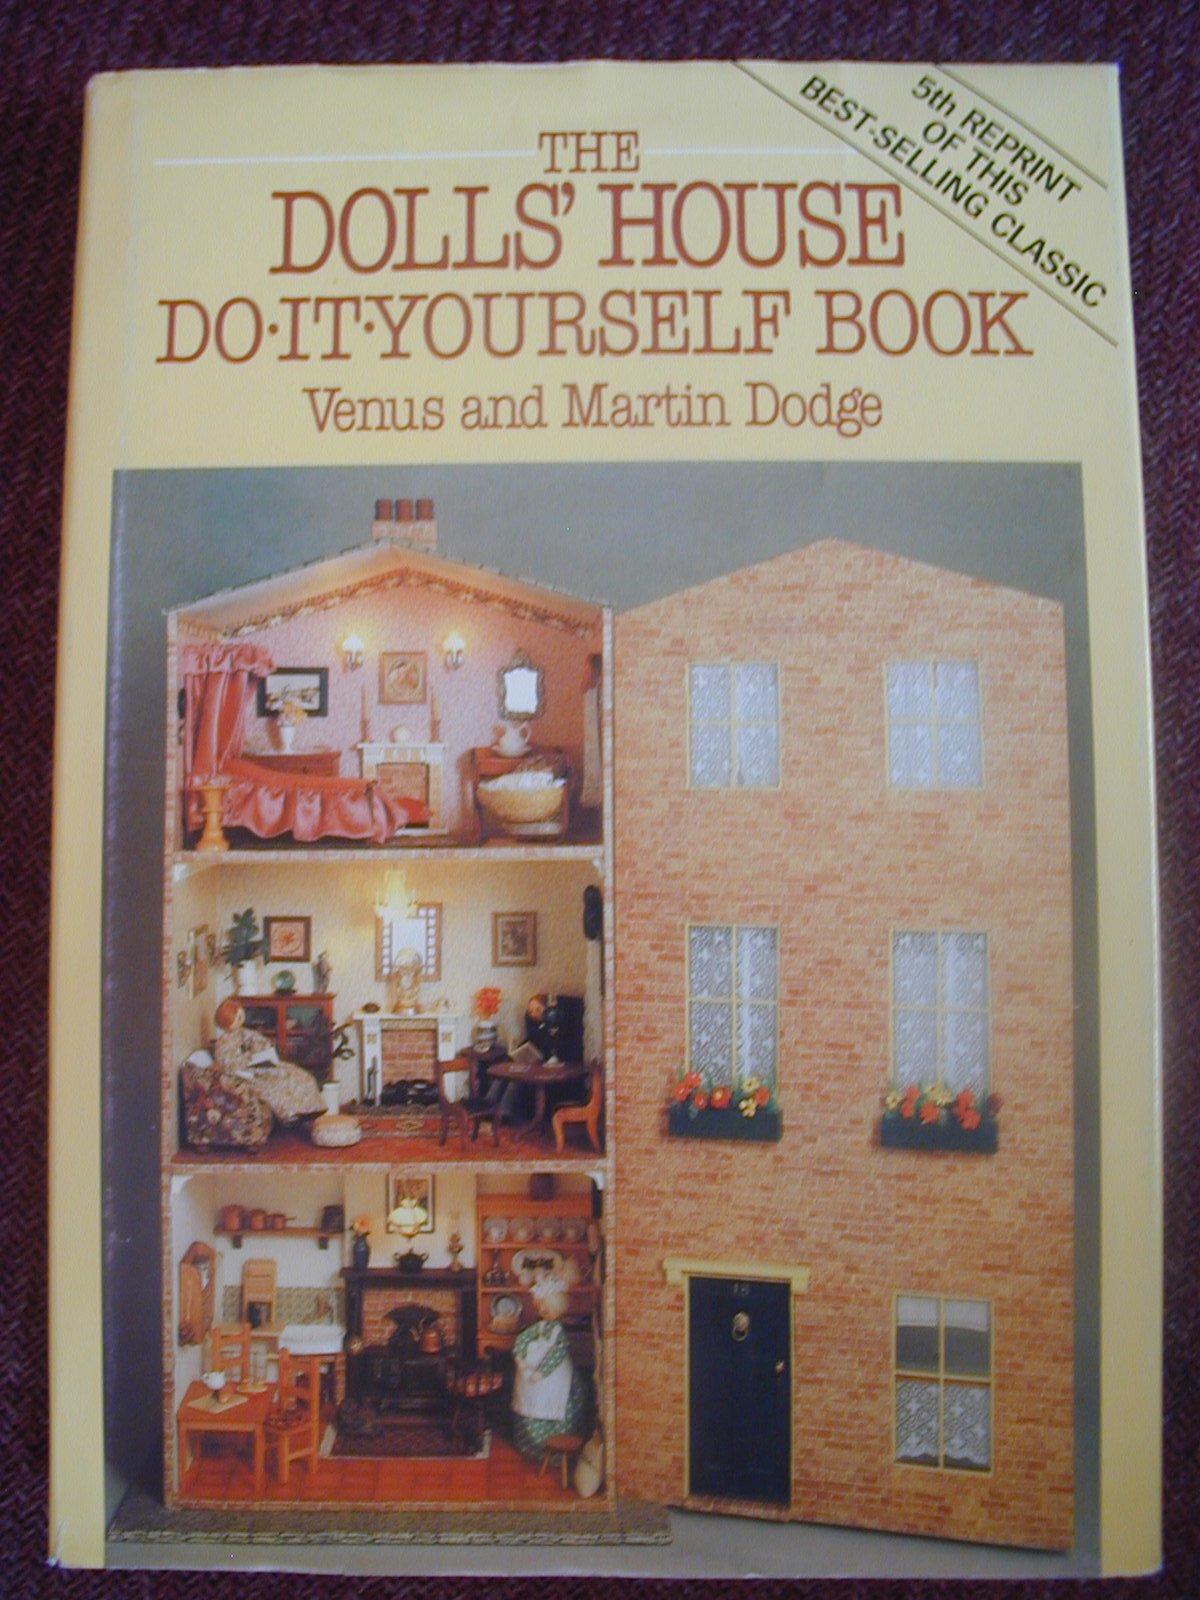 Dolls house diy book